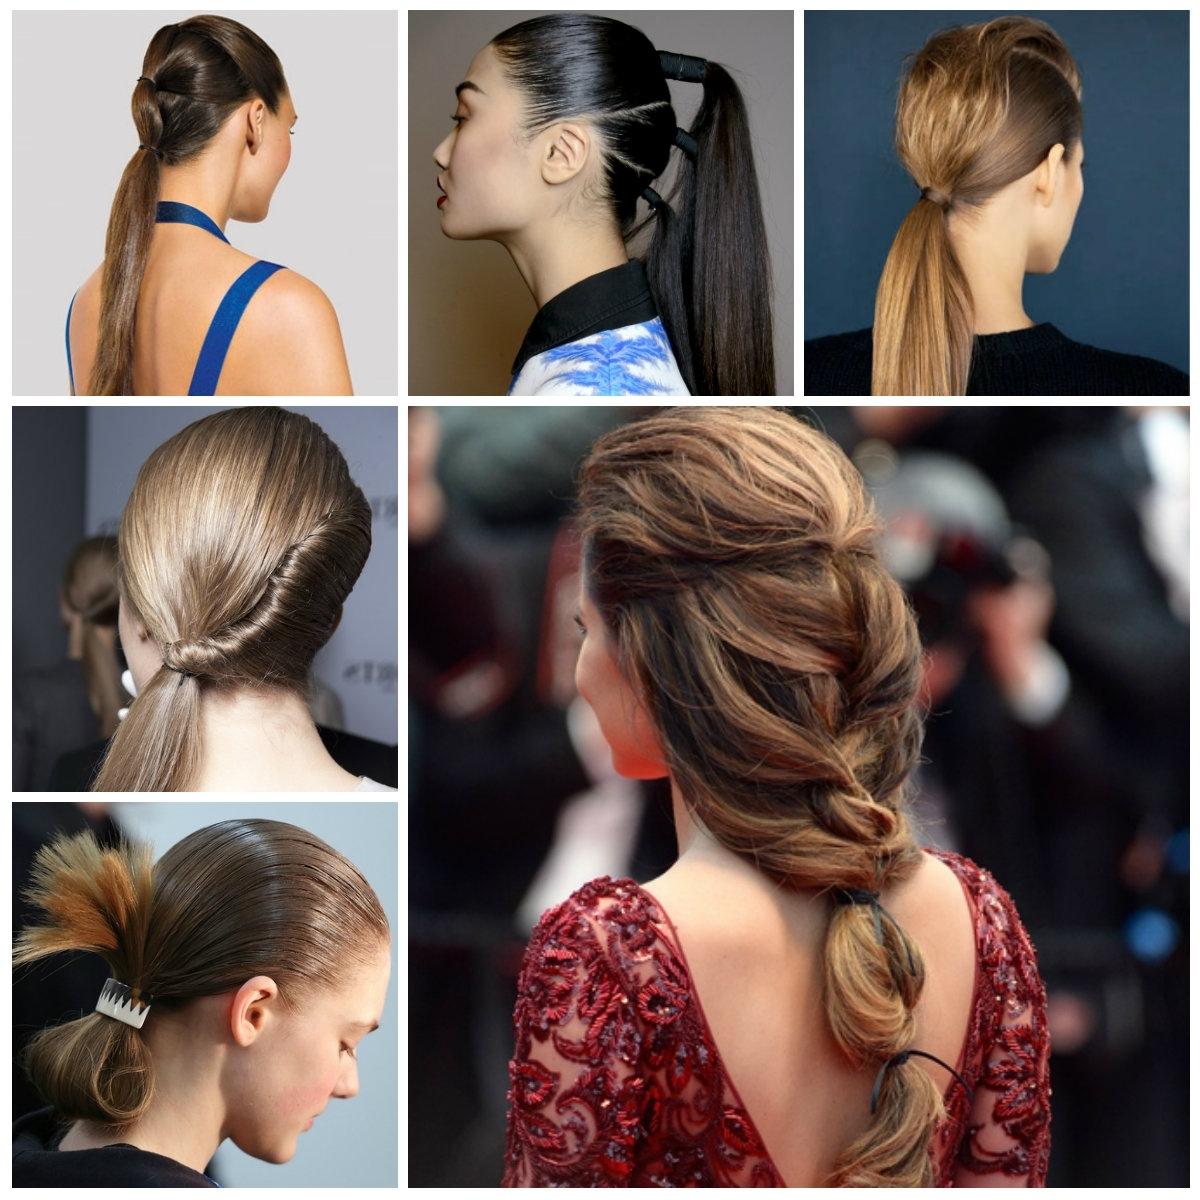 Runway Inspired Ponytail Hairstyles | New Haircuts To Try For 2018 Throughout Ponytail Updo Hairstyles For Medium Hair (View 14 of 15)